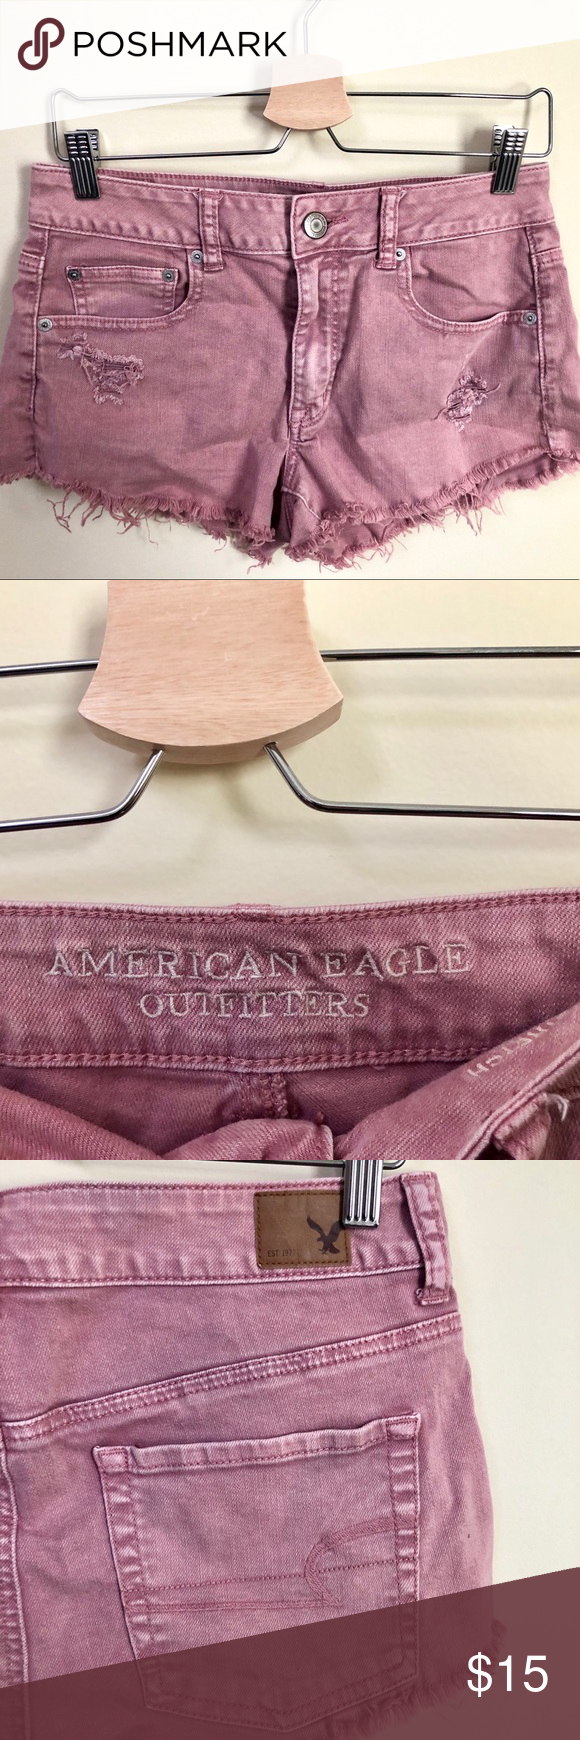 ⚡️Pink American Eagle Denim Cutoff Shorts⚡️ Super cute American Eagle denim shorts with a frayed cutoff design. The shade of pink is very flattering and looks especially great with whites, greys, blacks, and patterns. These shorts are in great condition and give some stretch (they're the stretch style AE shorts). I'm willing to negotiate, so please reach out to me with any offers or inquiries :) American Eagle Outfitters Shorts Jean Shorts #denimcutoffshorts